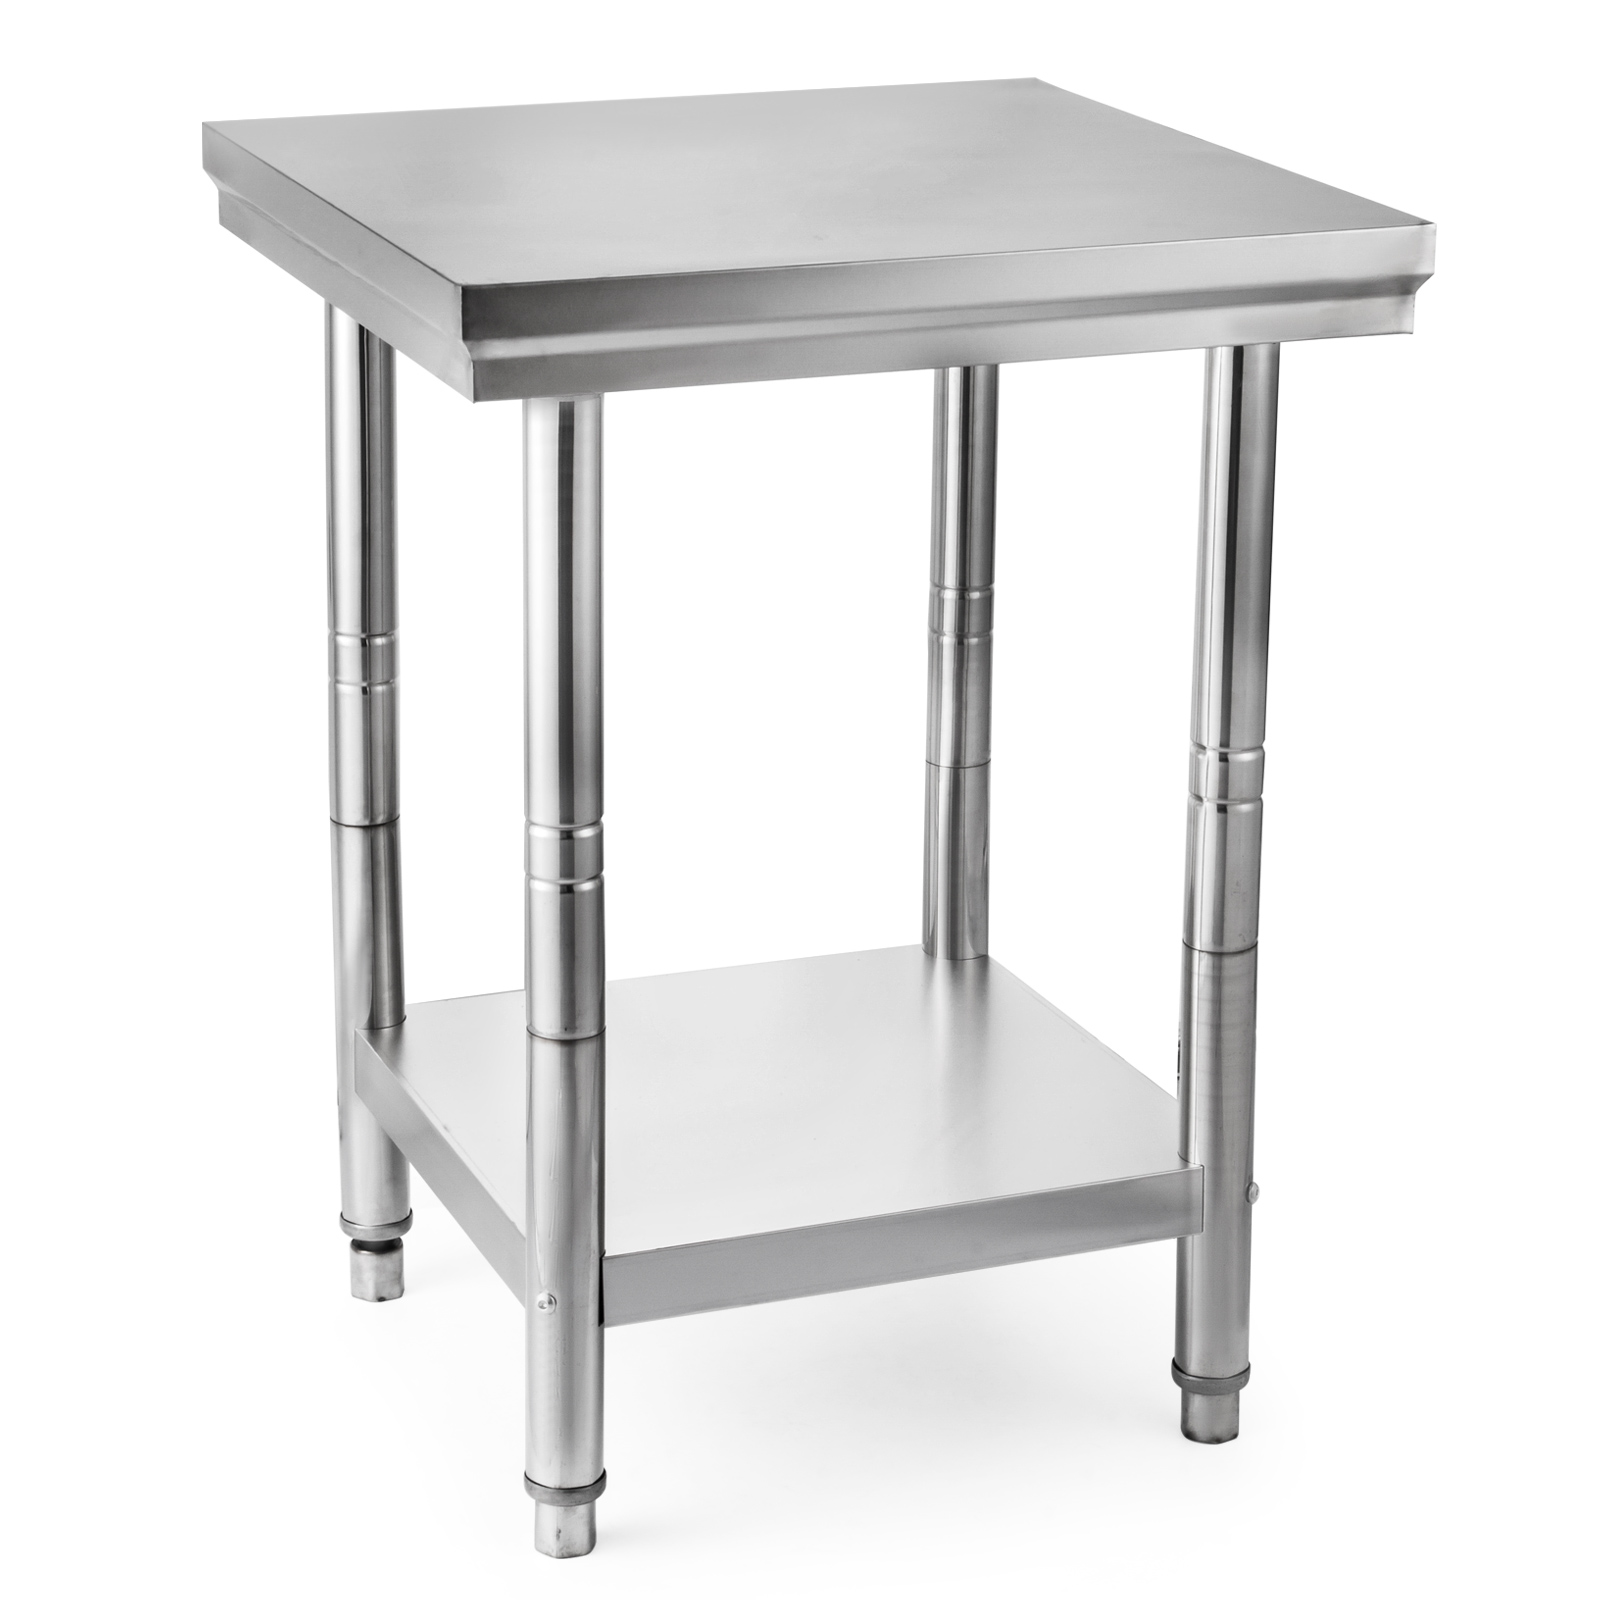 Kitchen Table With Food: Commercial Stainless Steel Work Bench Kitchen Catering Table Worktop Food Prep